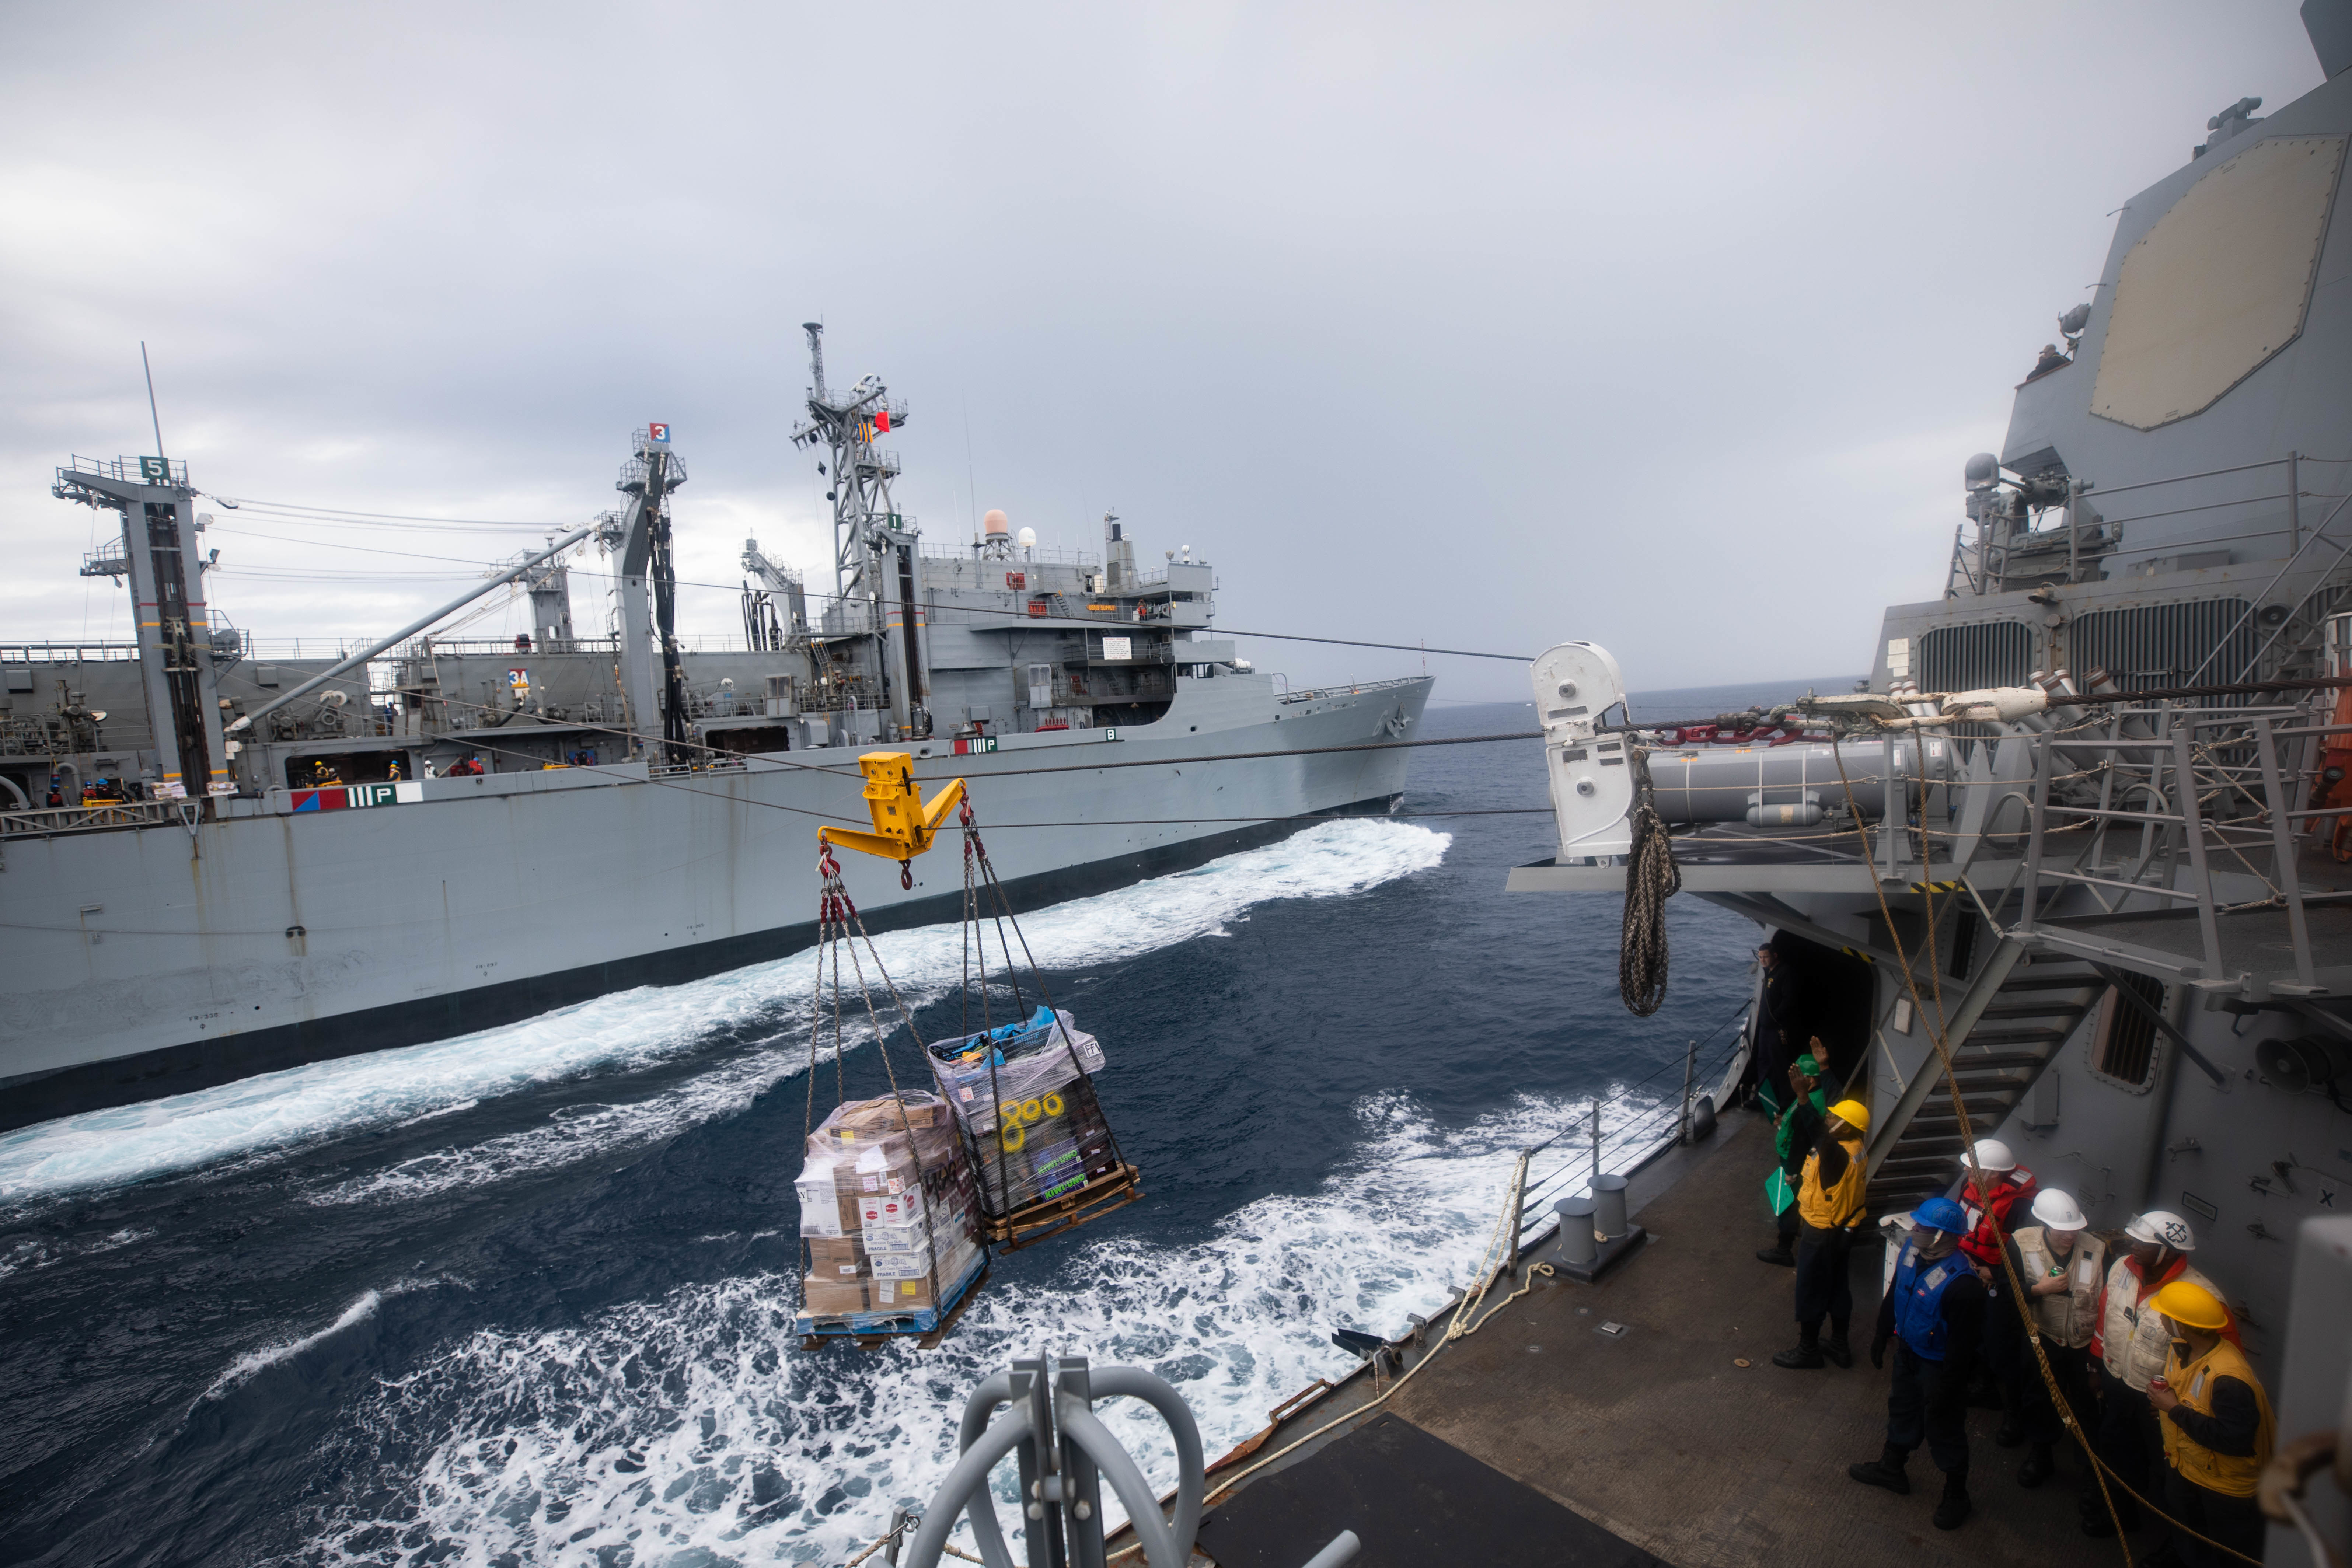 The Arleigh Burke-class guided-missile destroyer USS Roosevelt (DDG 80), right, receives pallets of food stores during a replenishment-at-sea with the fast combat support ship USNS Supply (T-AOE 6), not pictured.